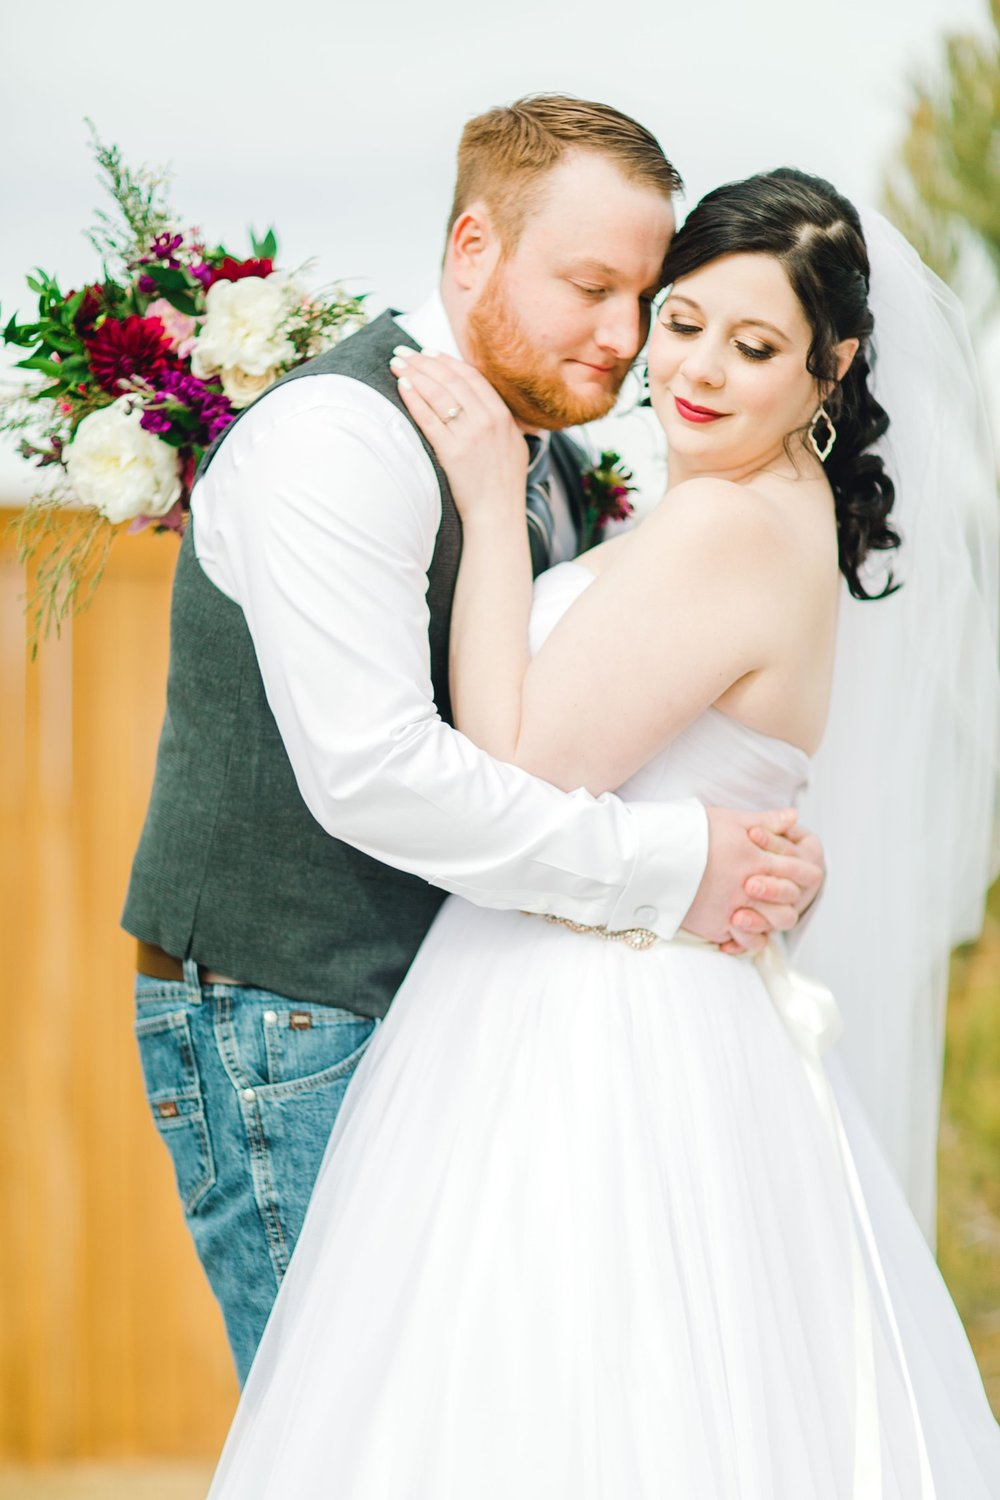 Autumn-Oaks-Events-Morgan-Andy-Lane-Wedding-Lubbock-Photography__0037.jpg